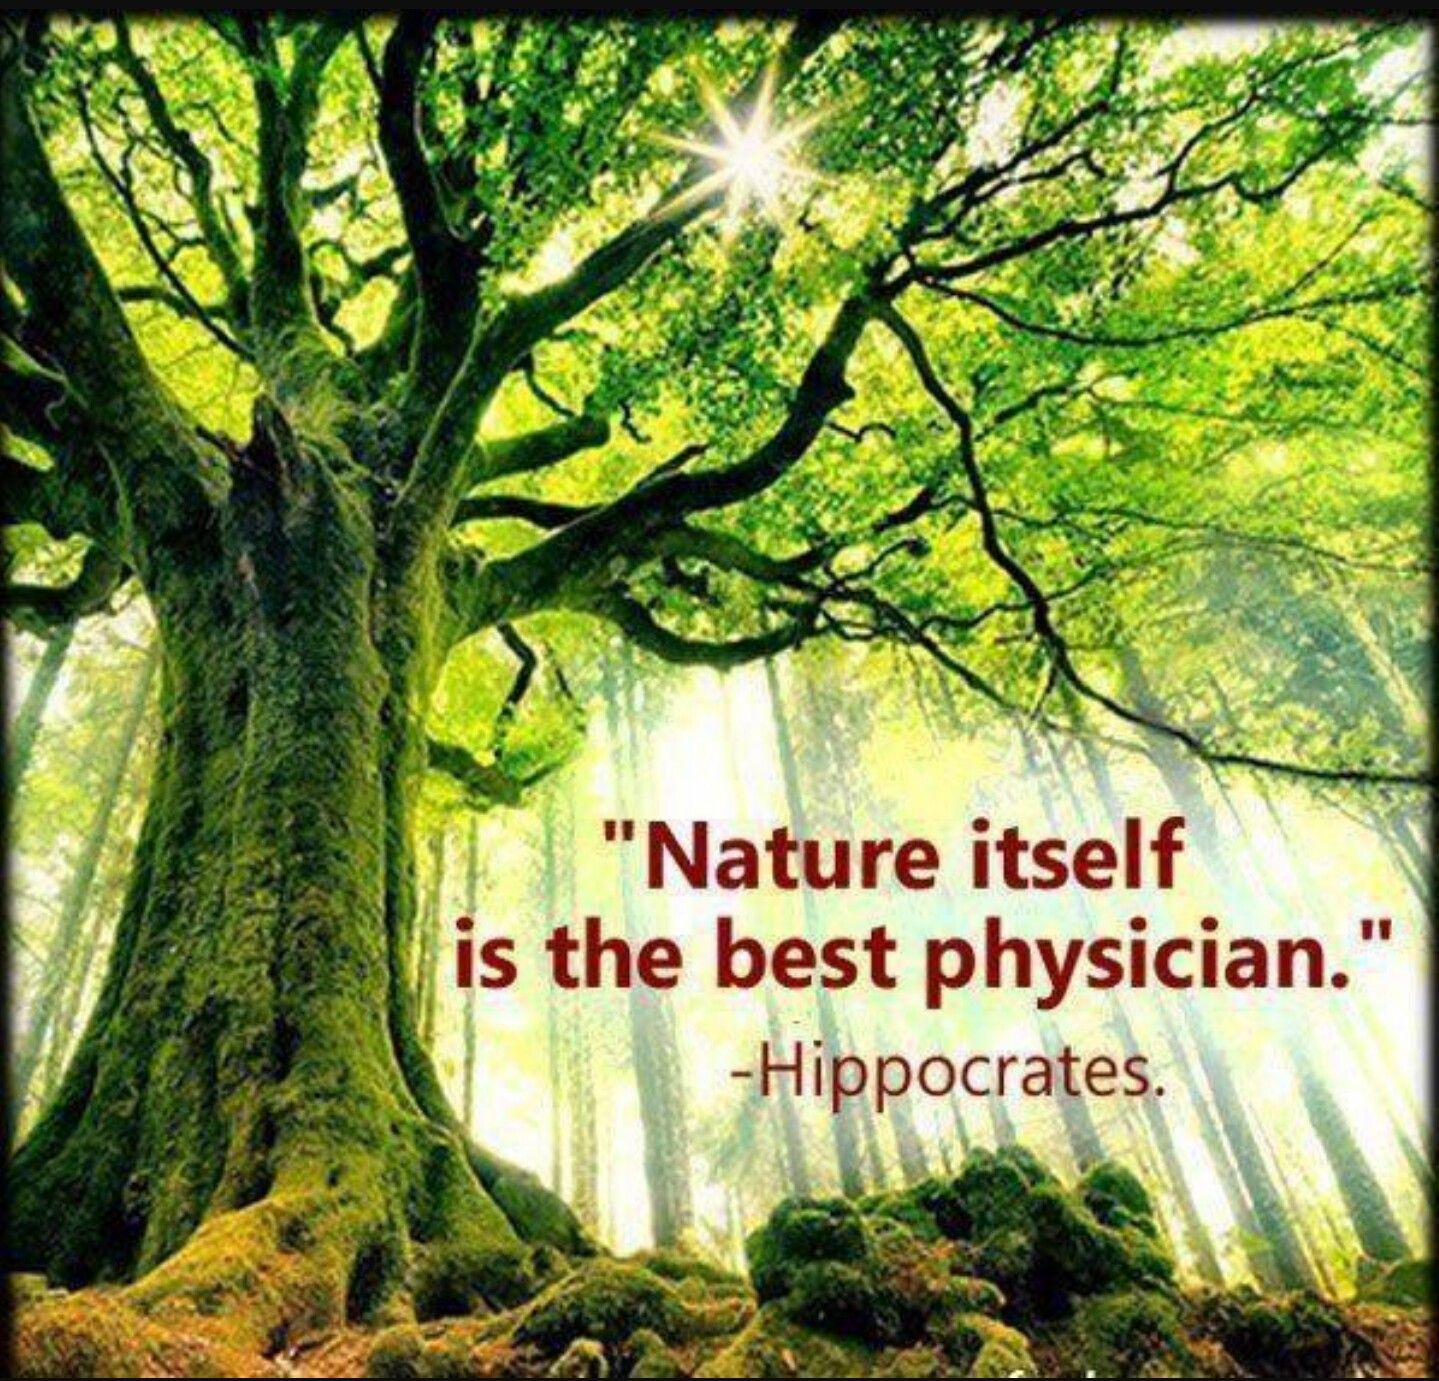 Nature itself is the best physician - Hippocrates